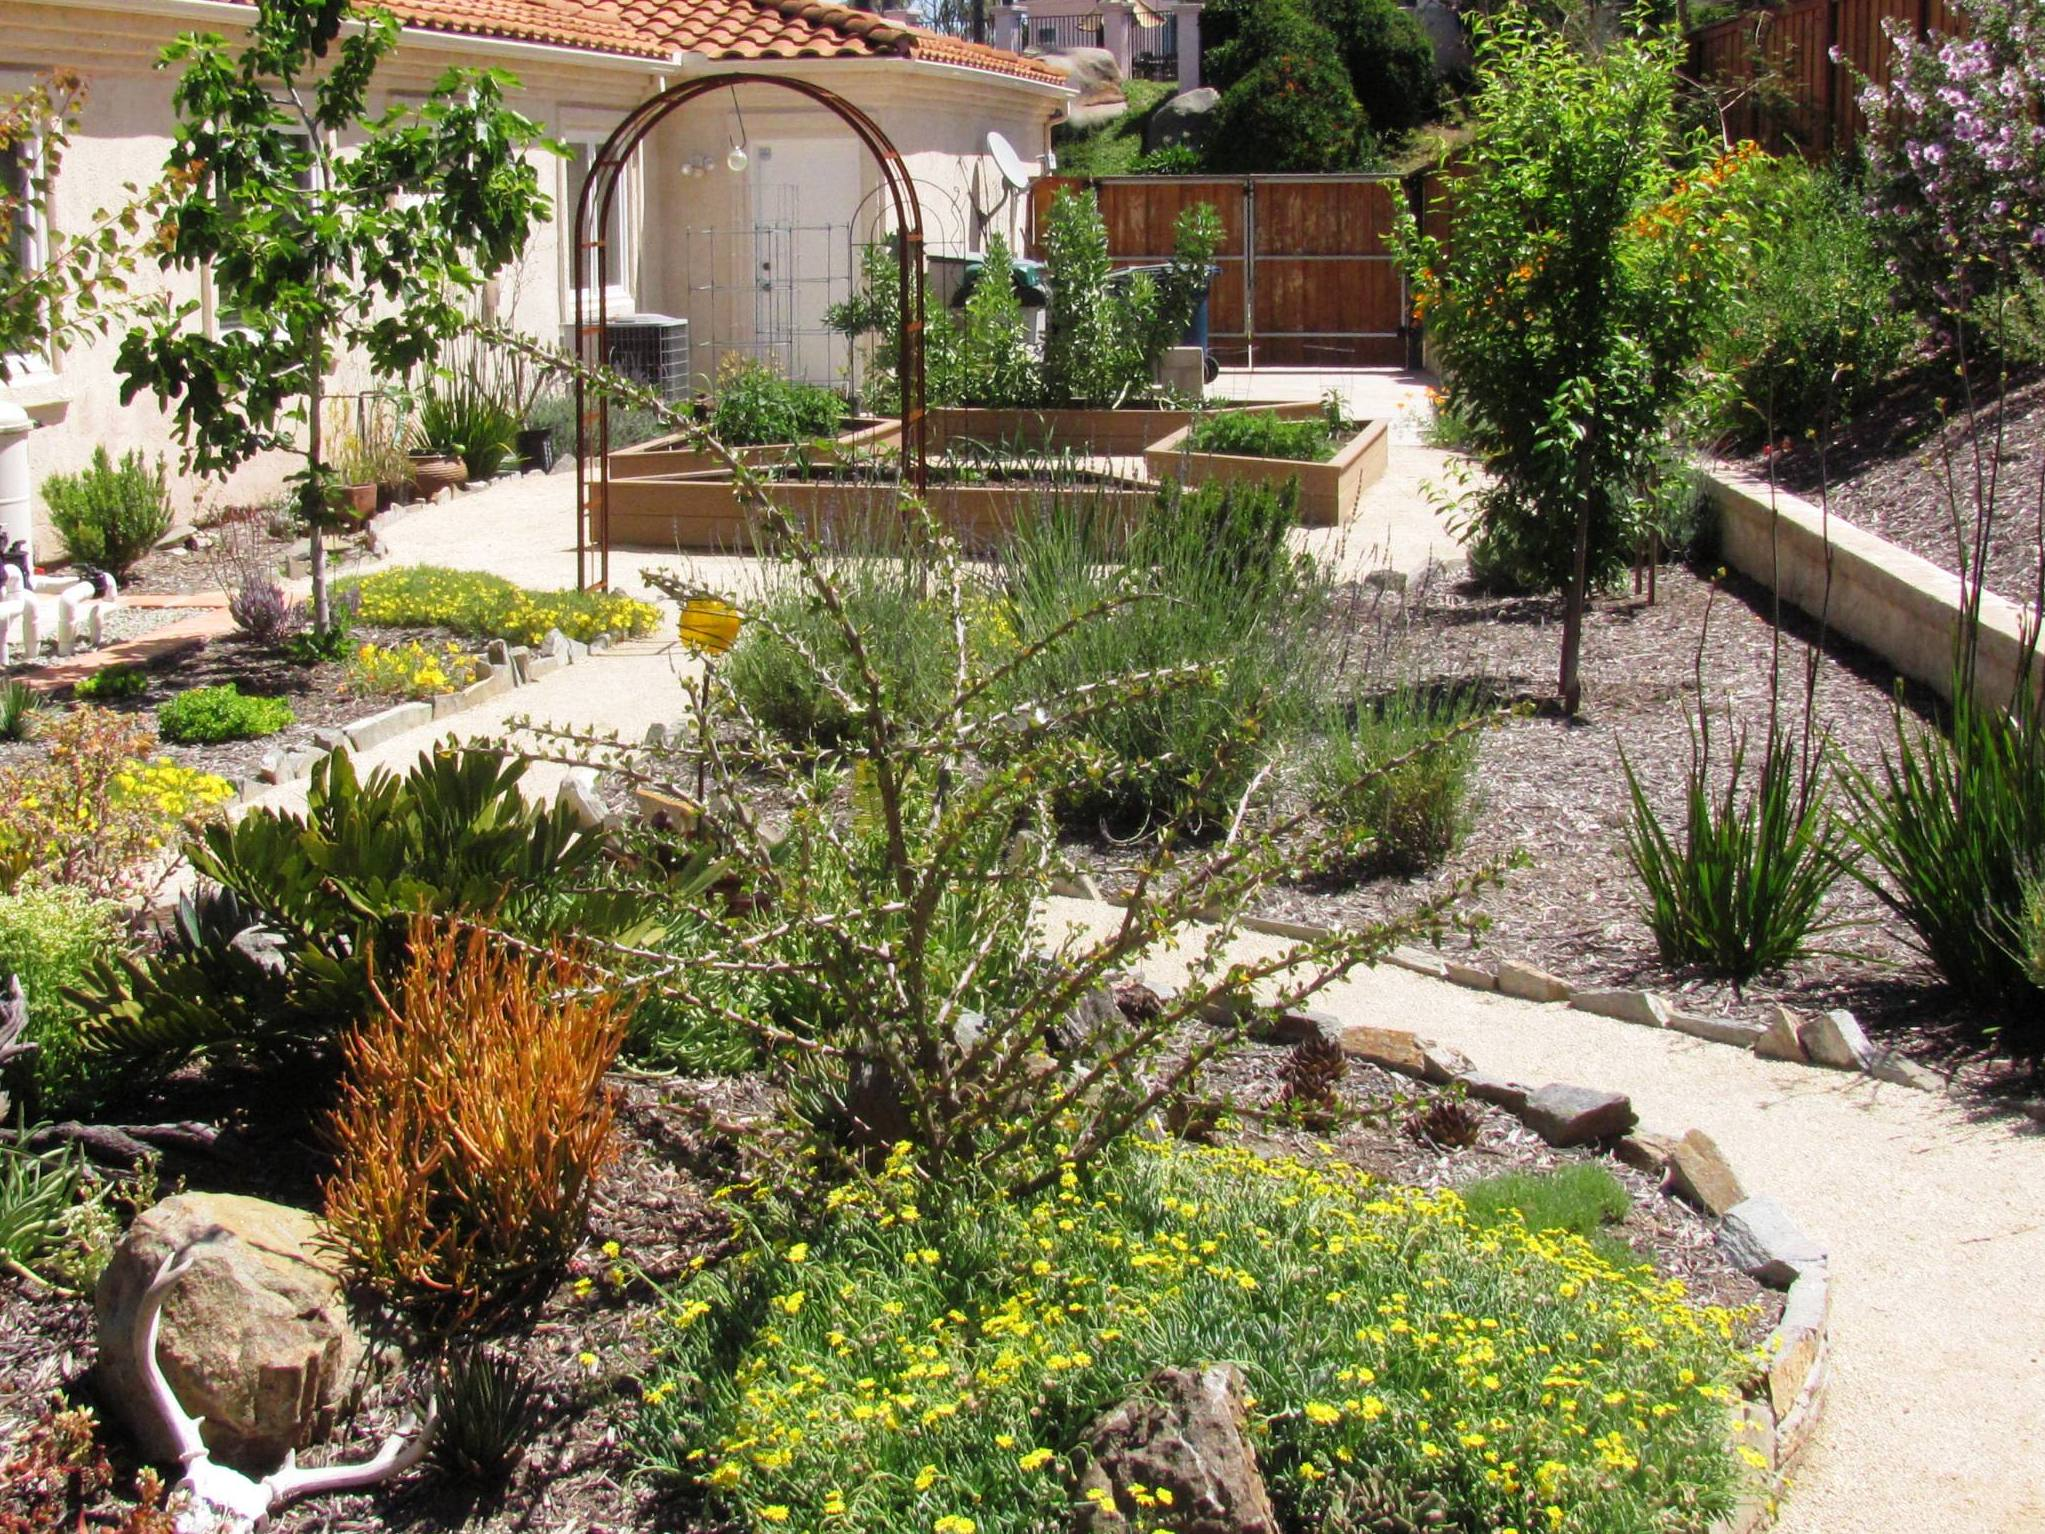 Backyard Design San Diego enchanting backyard design san diego for interior home addition ideas with backyard design san diego Backyard Landscape Design Xeriscape San Diego